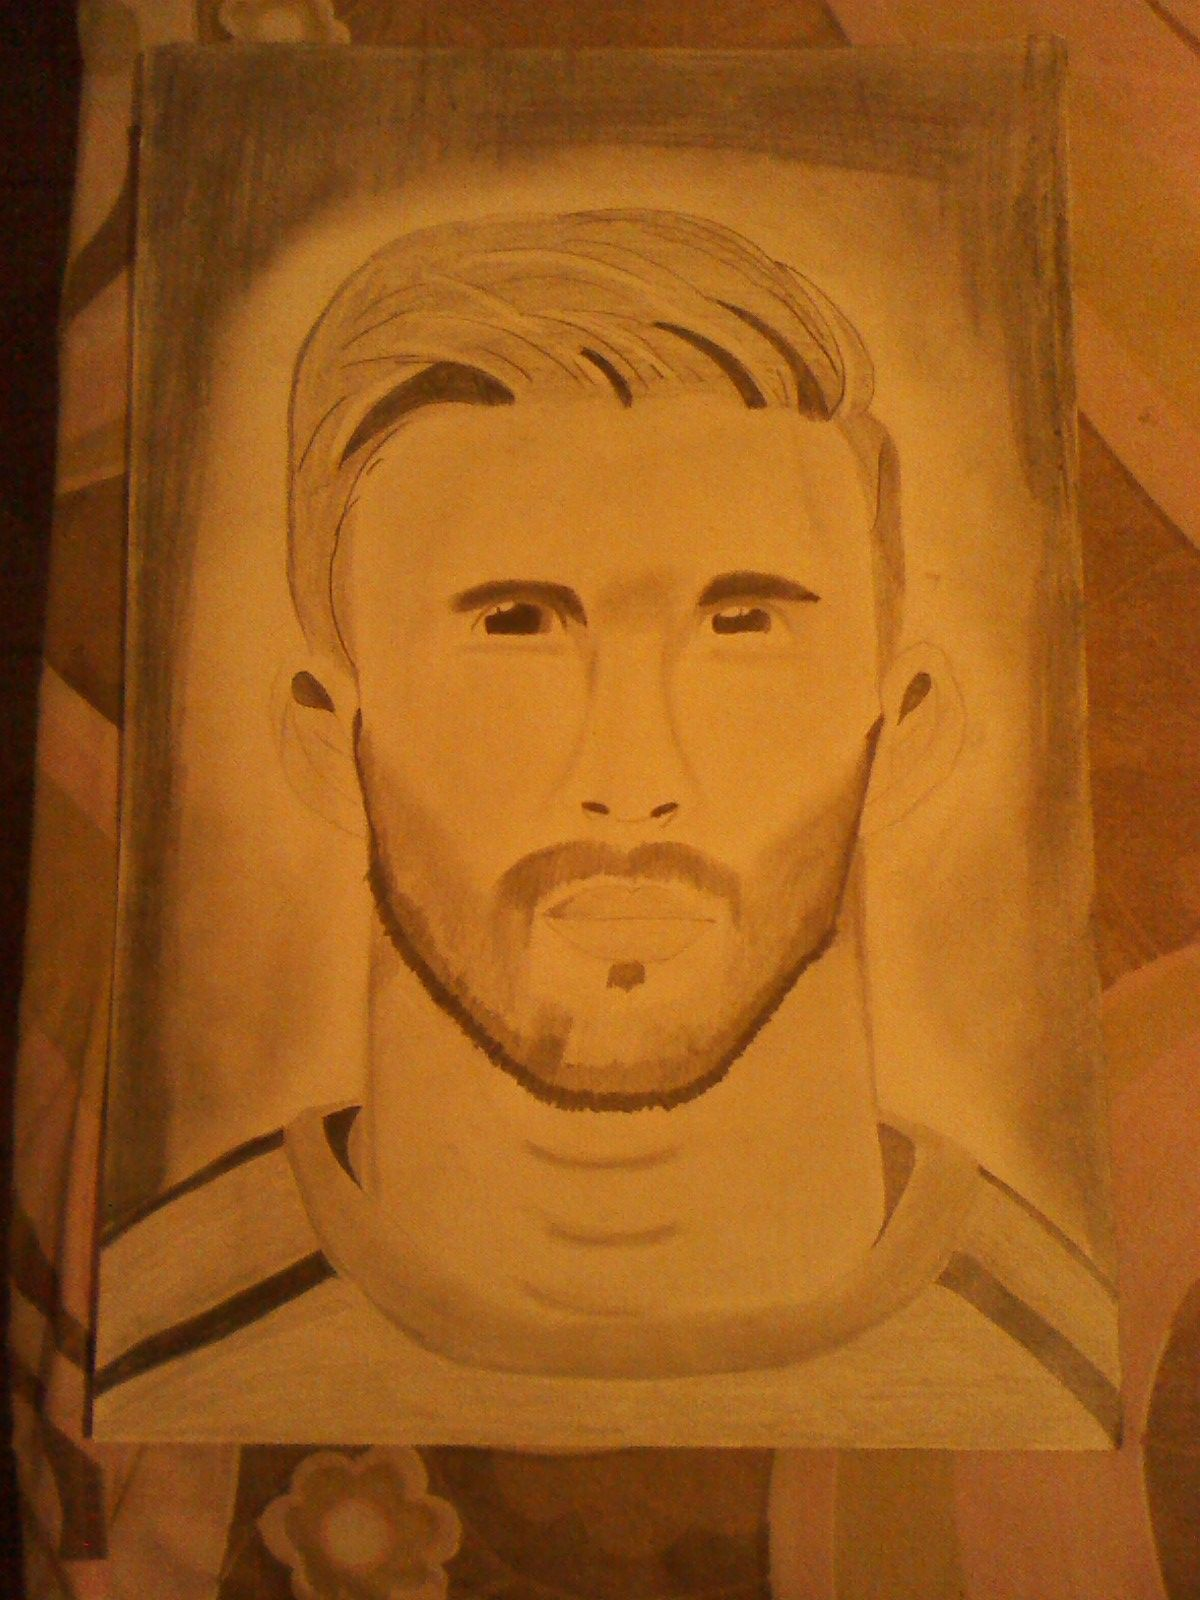 The main idea was to draw messi but then i drew it seemed more like sergio ramos so i decided better to headline it by drawing a footballer